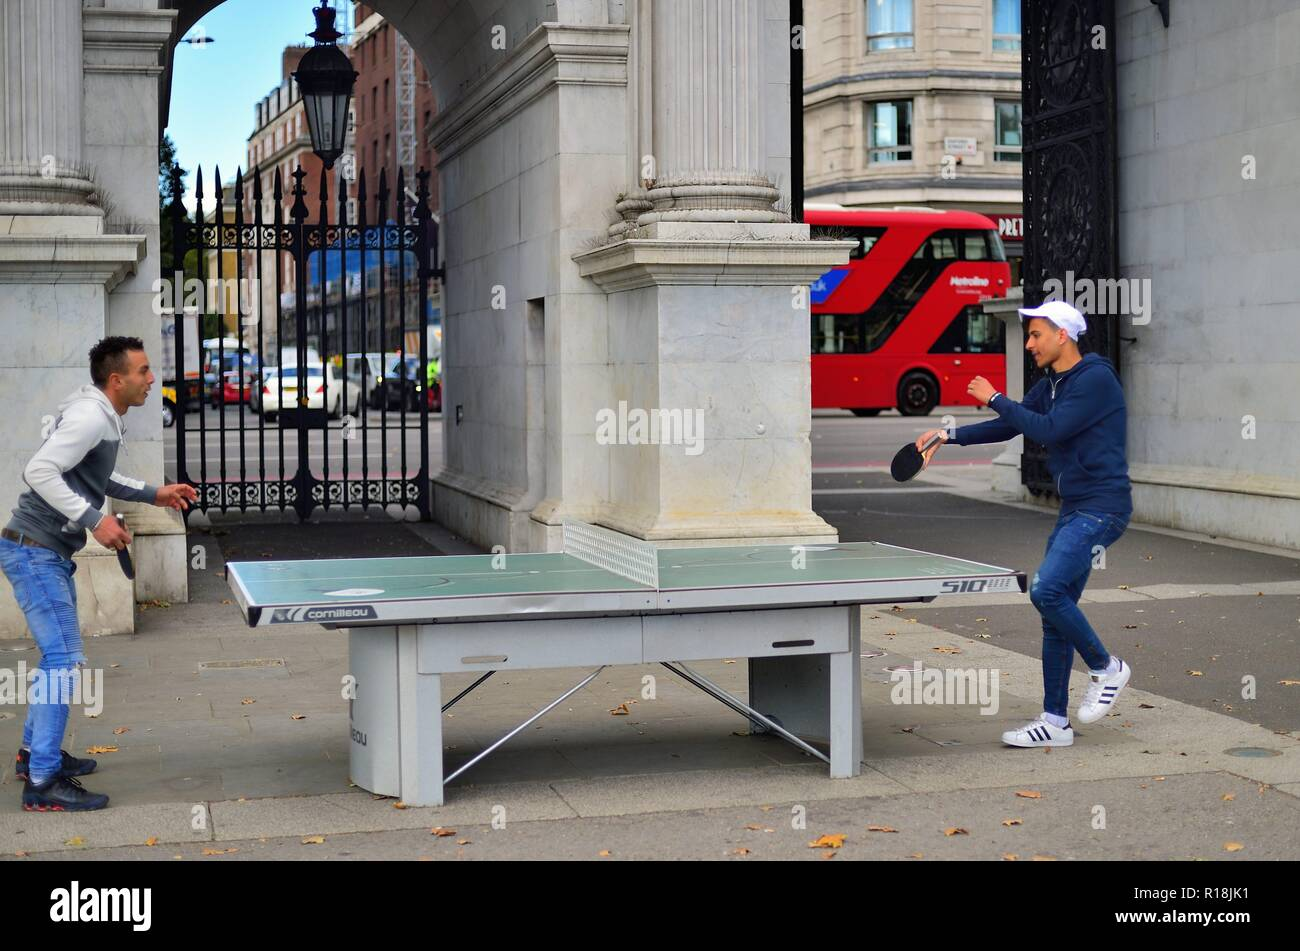 London, England, United Kingdom. Two men enjoy a ping-pong contest at the foot of Marble Arch. - Stock Image